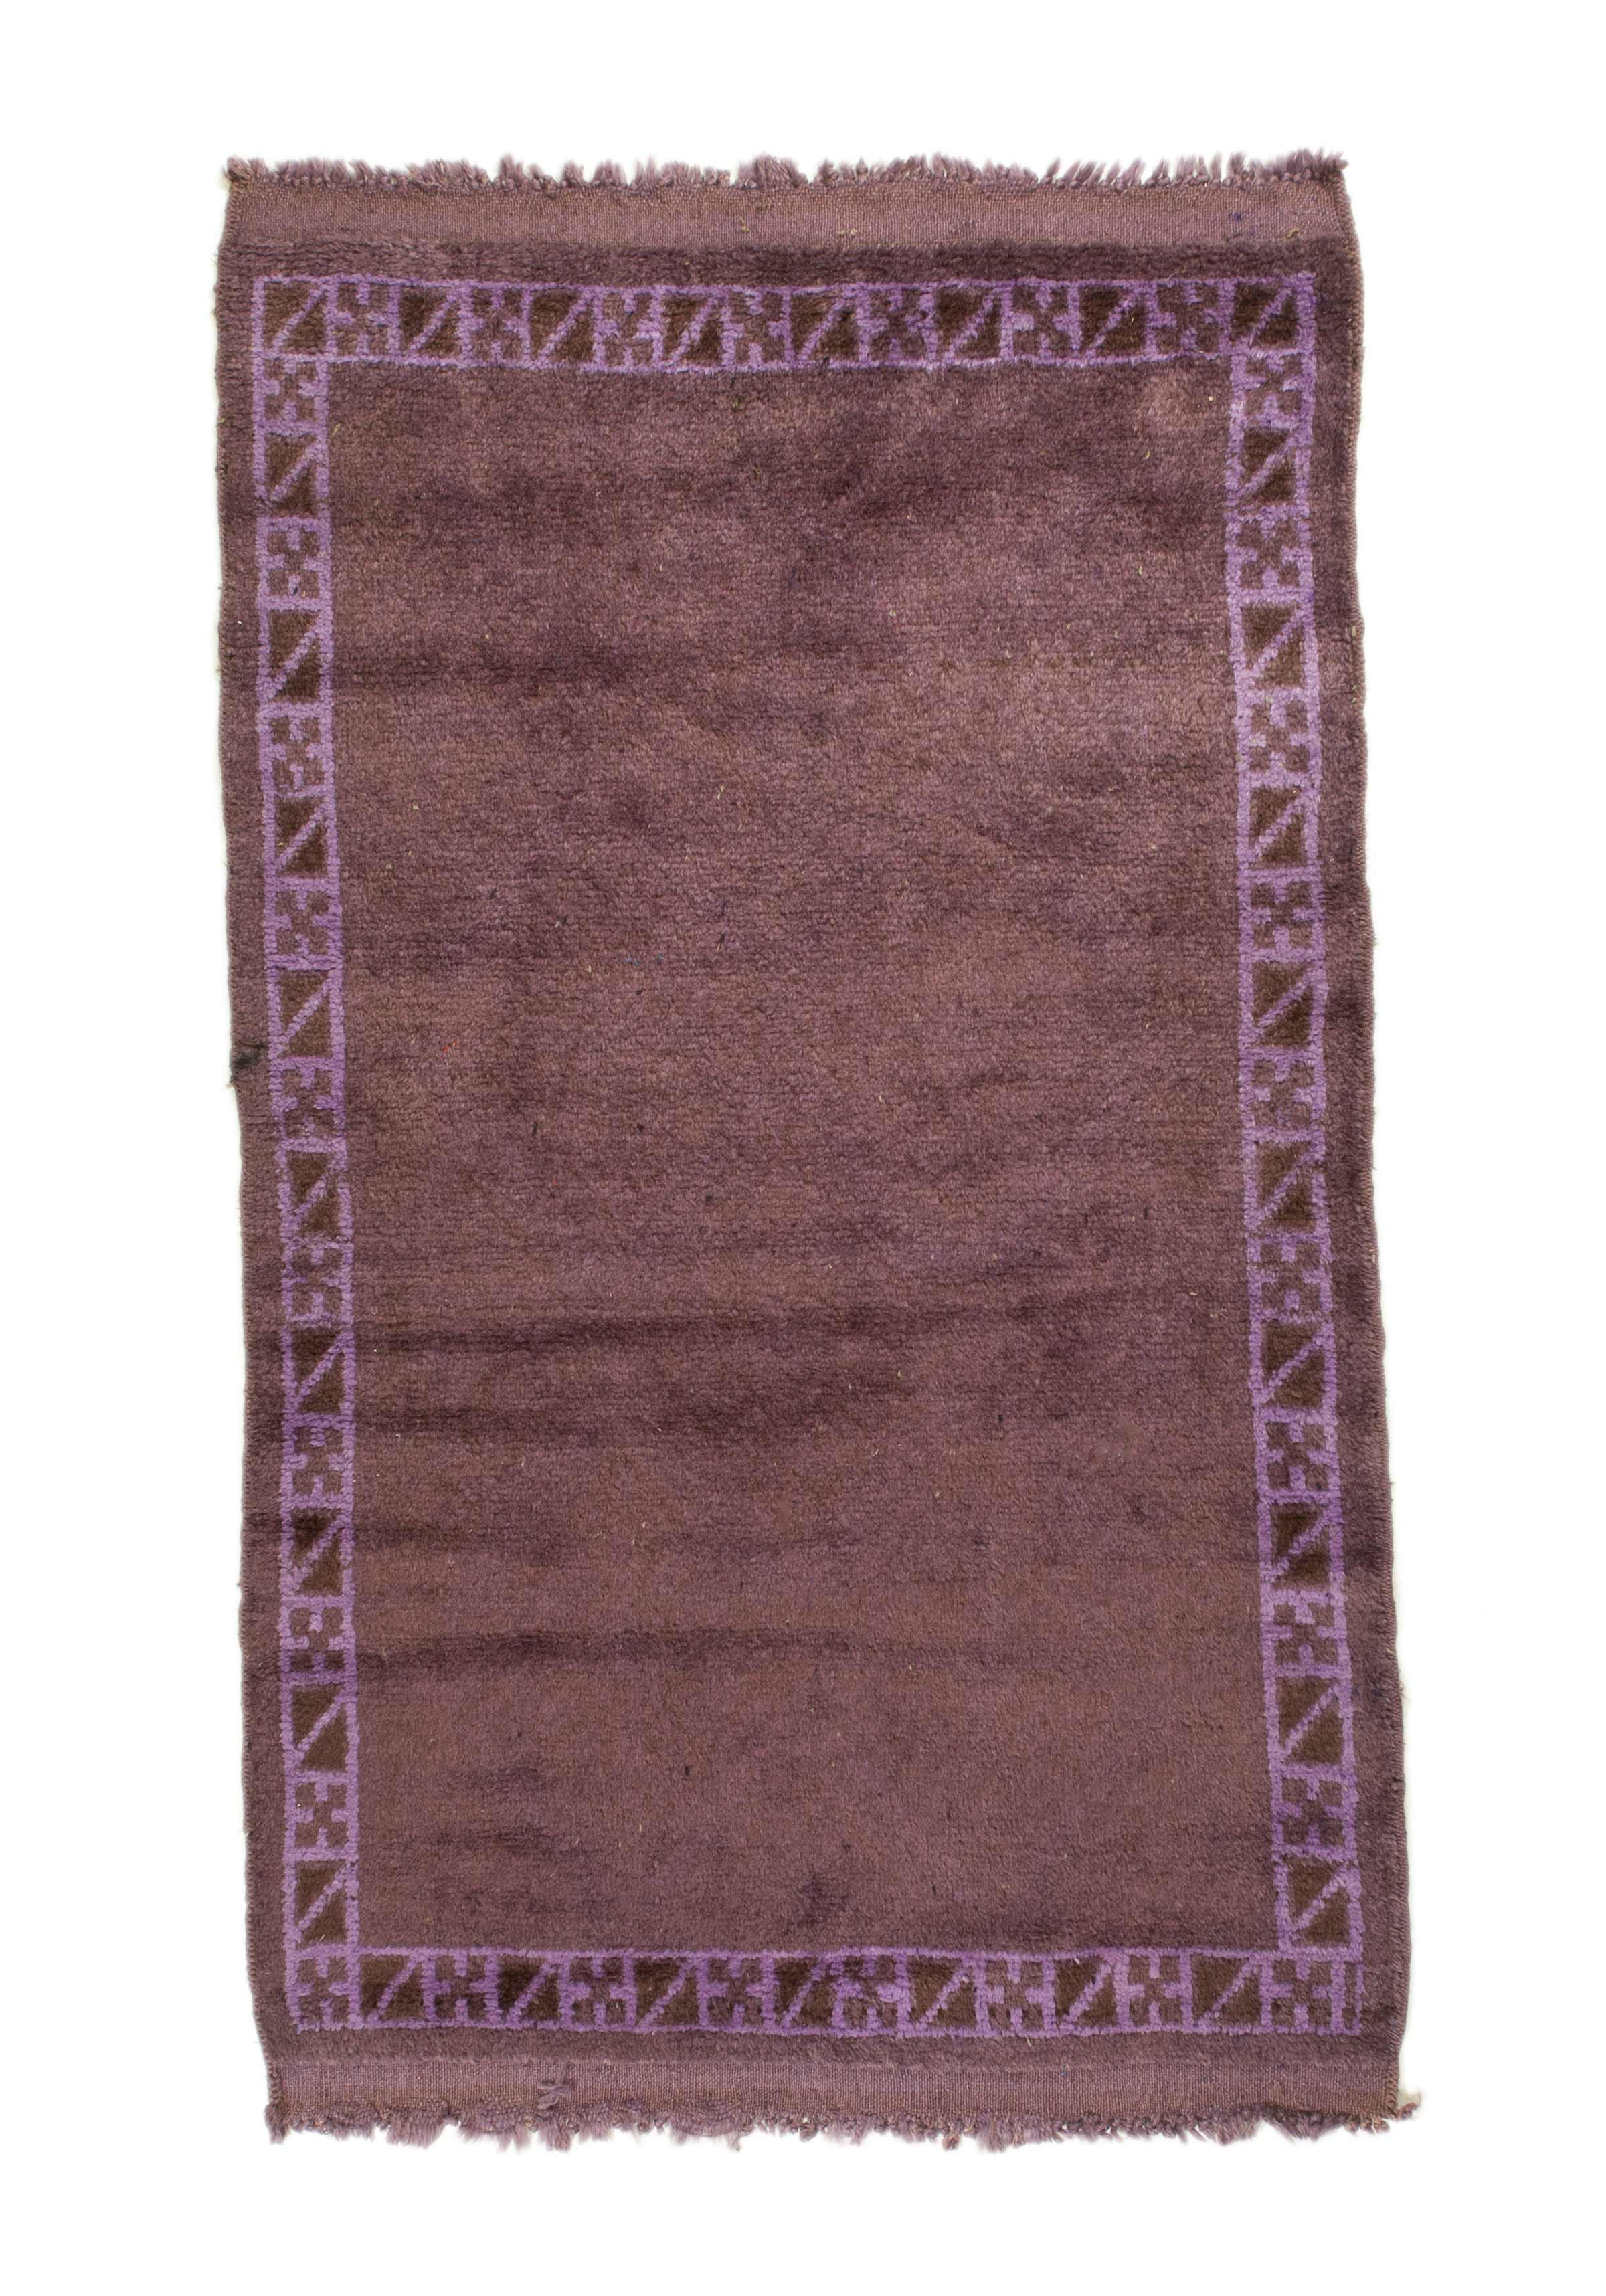 3x4 Overdyed Tribal Vintage Rug